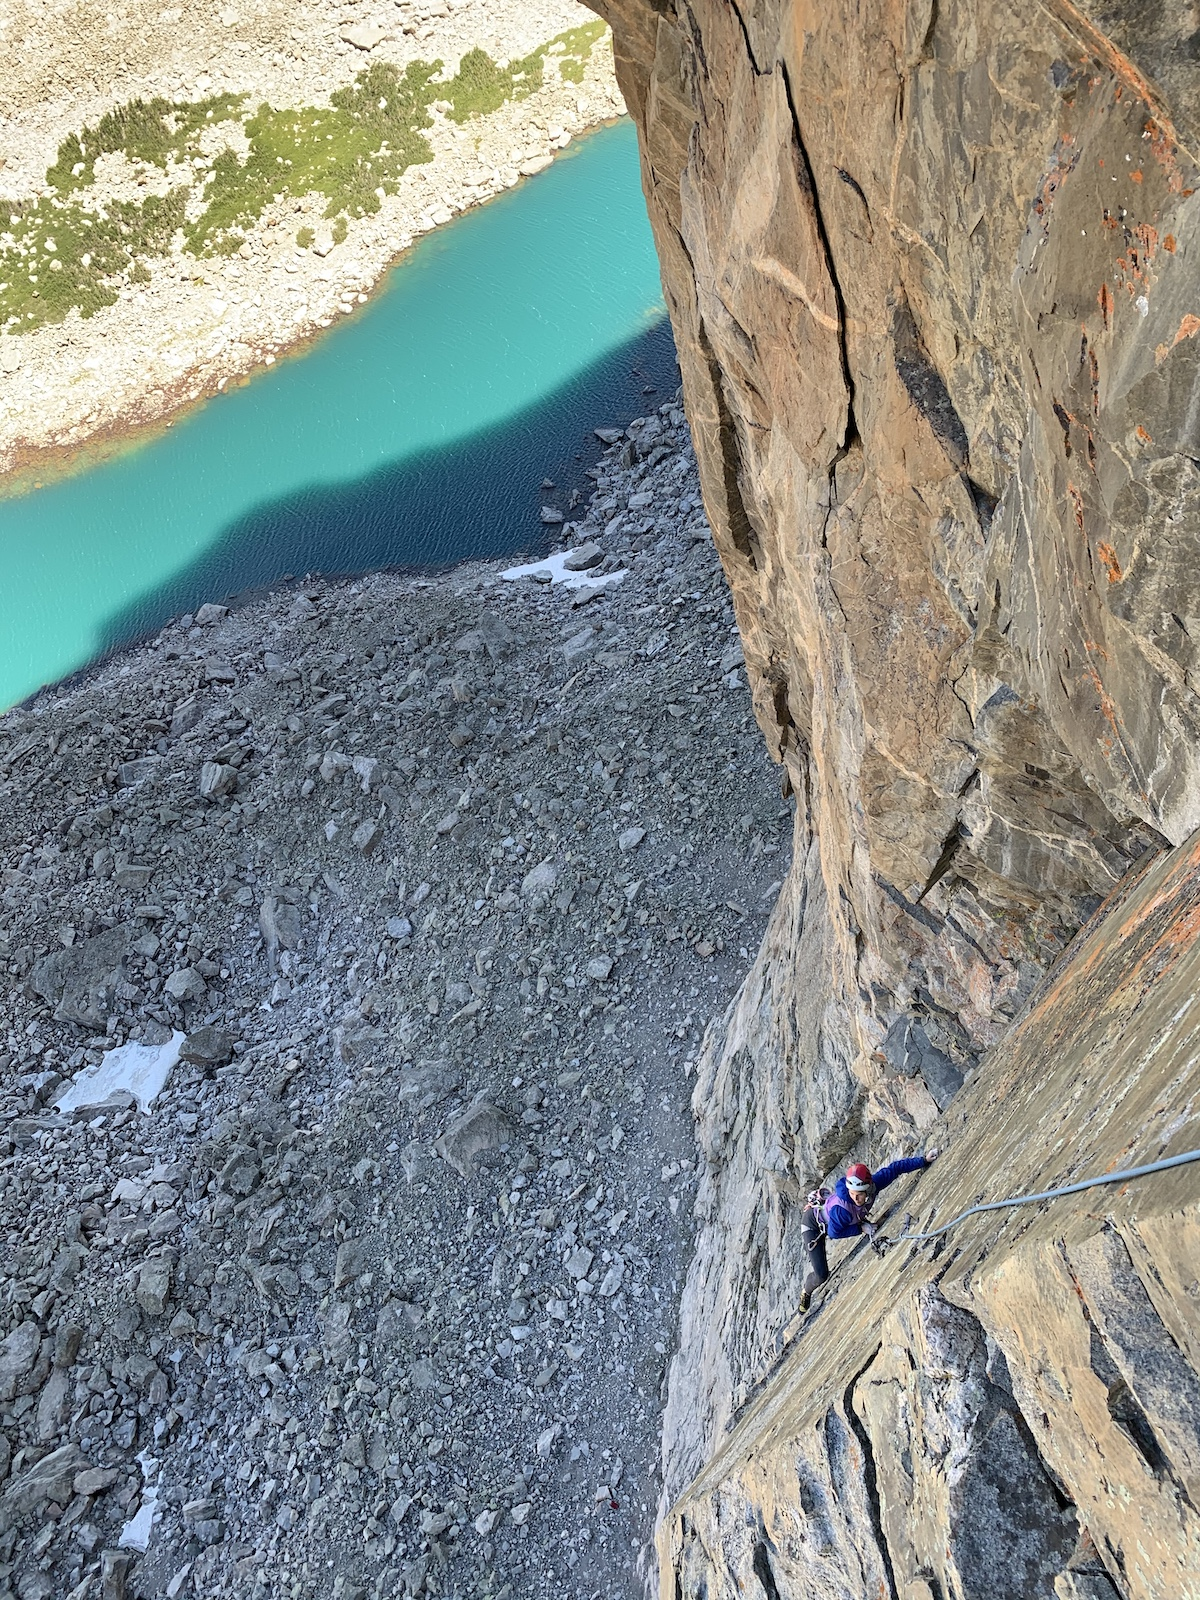 Clark enjoying the exposure on Jaded Lady, Mt. Hooker, Wind River Range. [Photo] Will Stanhope